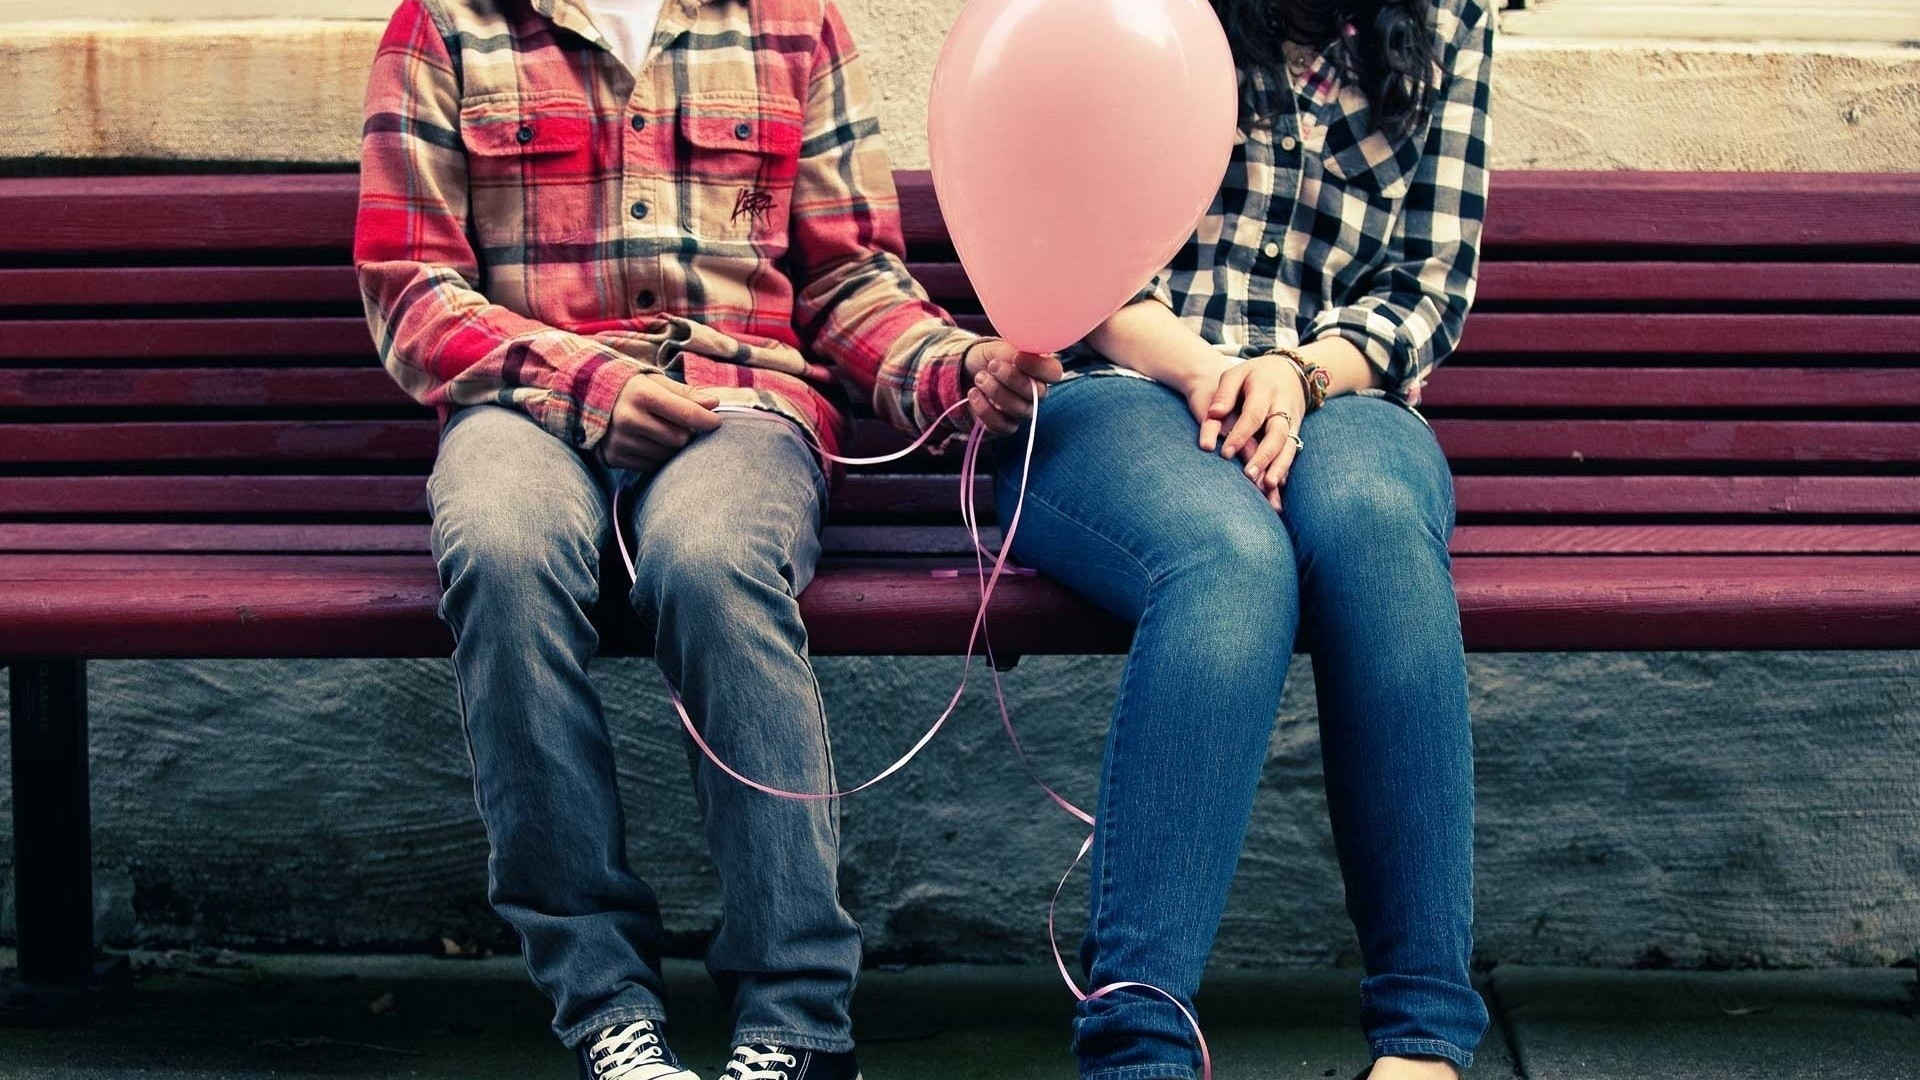 jeans love bench Balloons HD Wallpaper